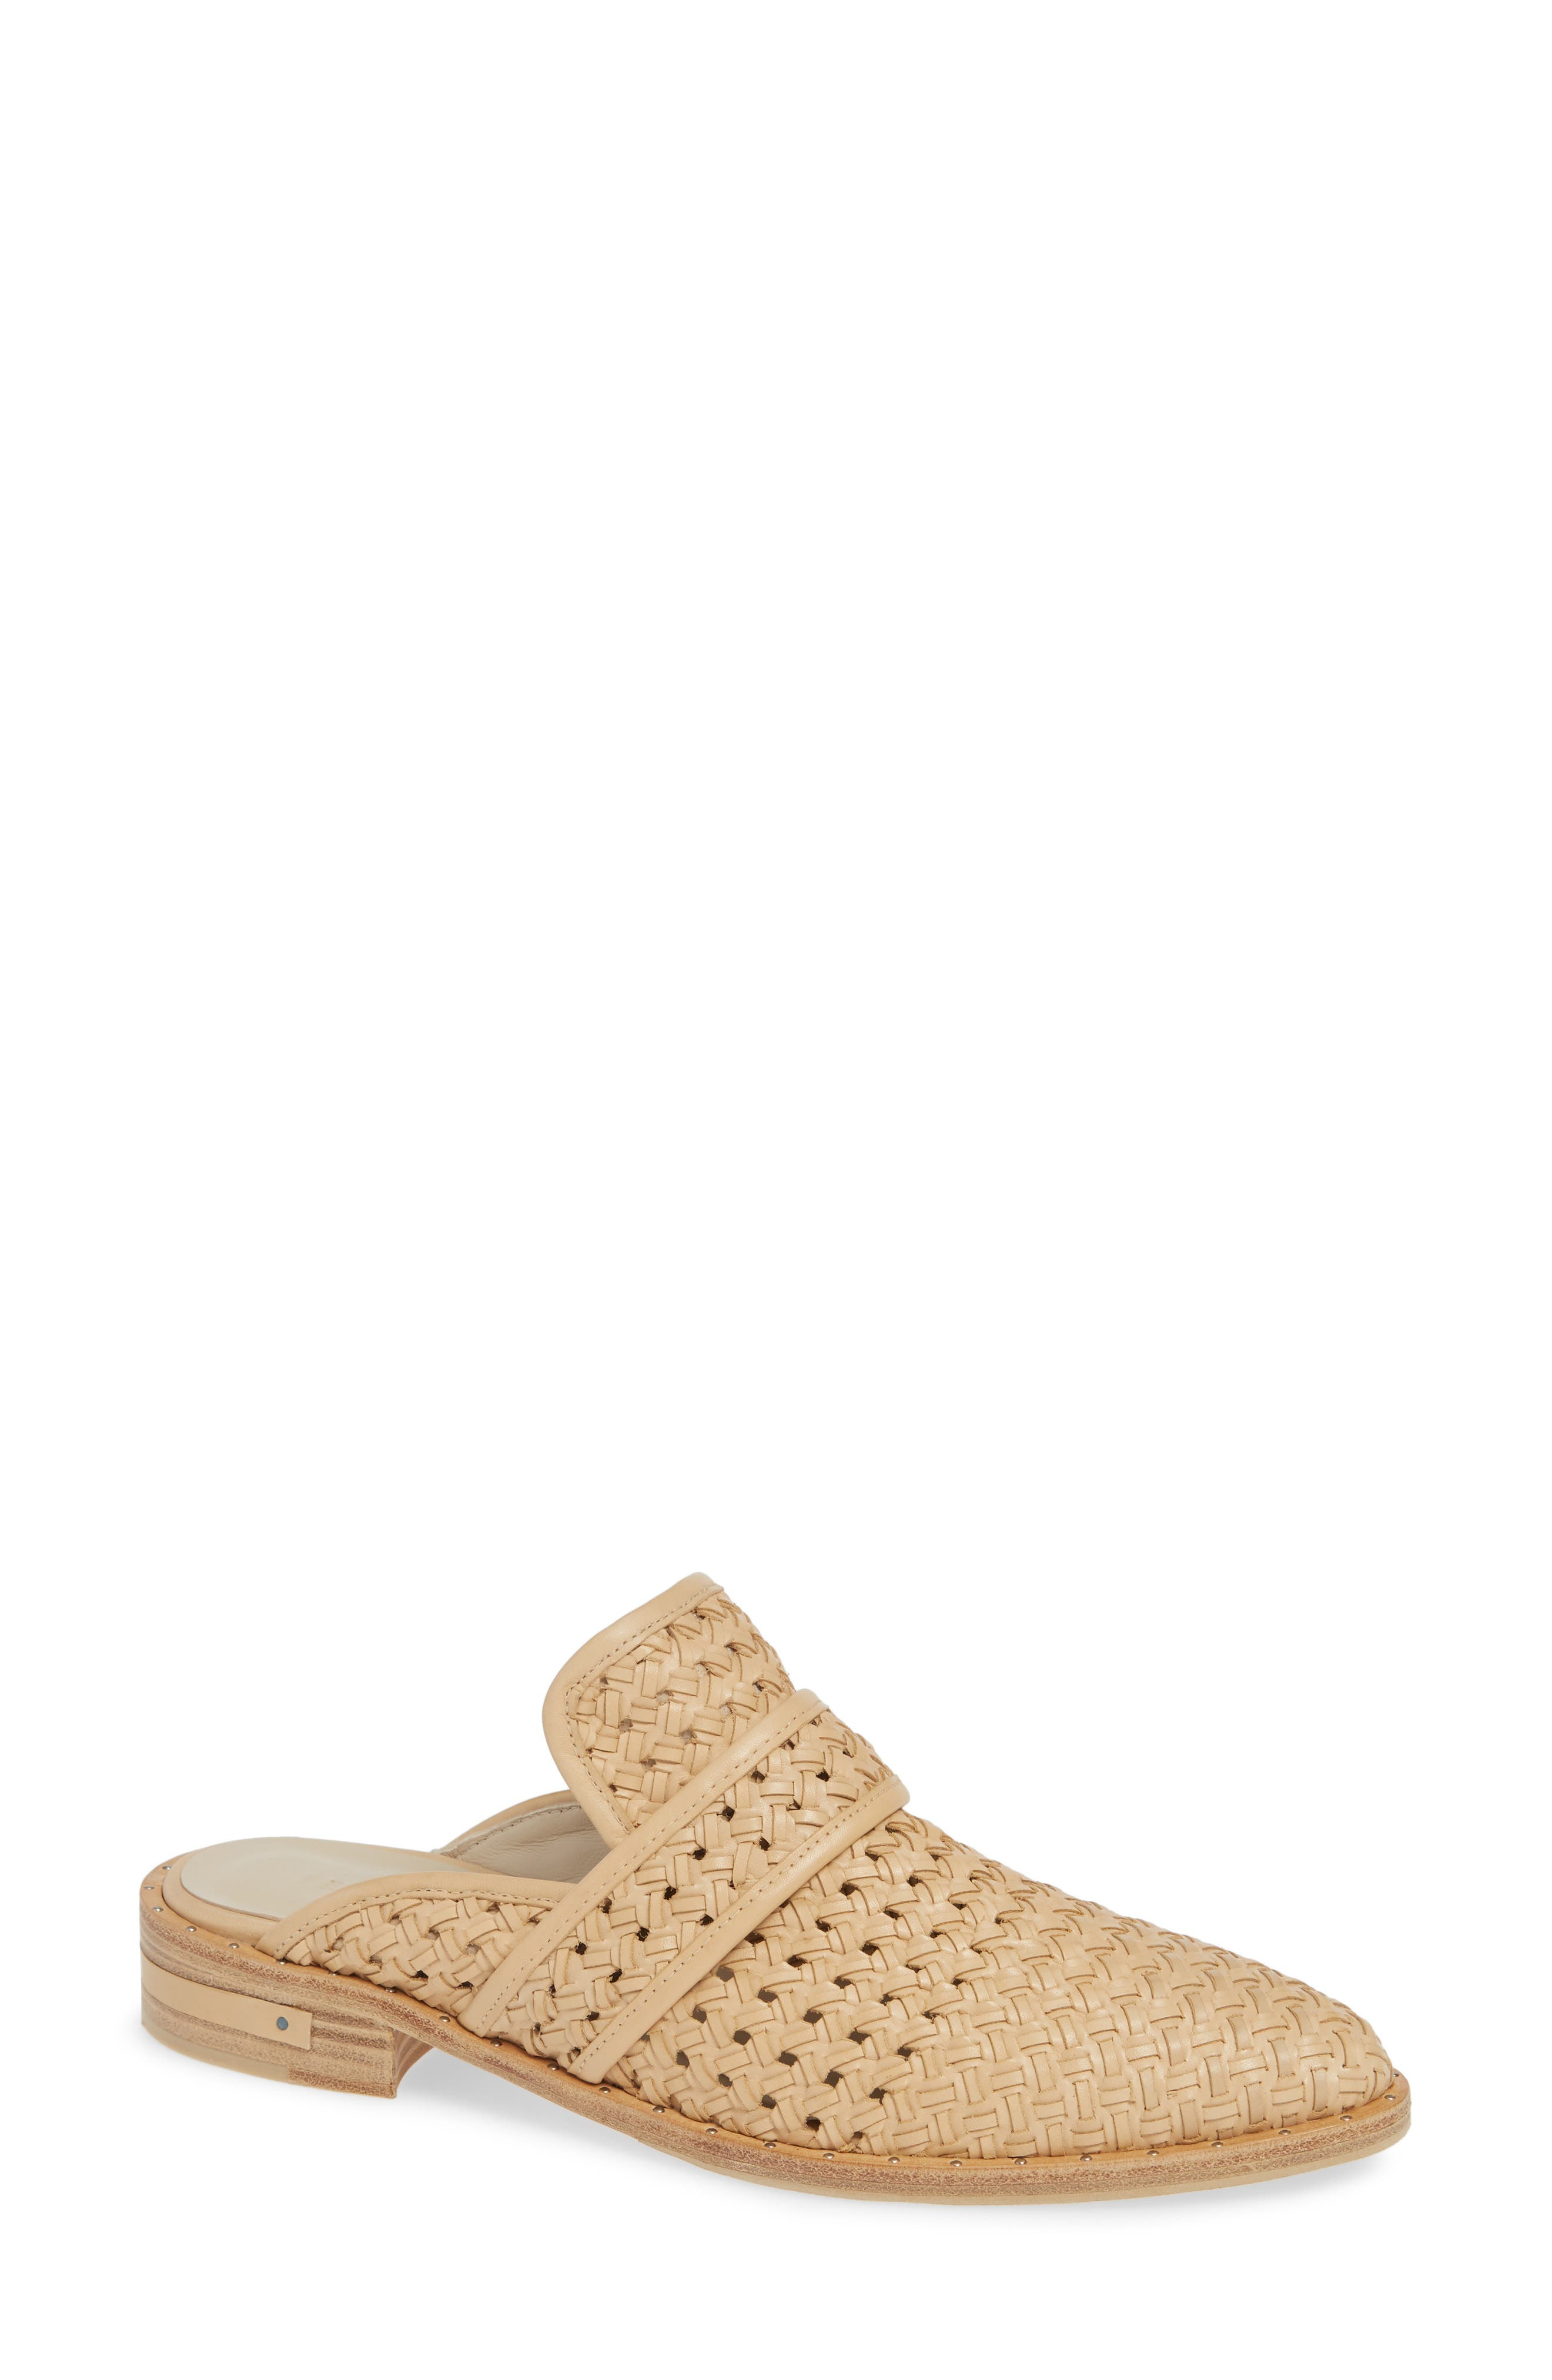 FREDA SALVADOR Keen Woven Mules in Nude